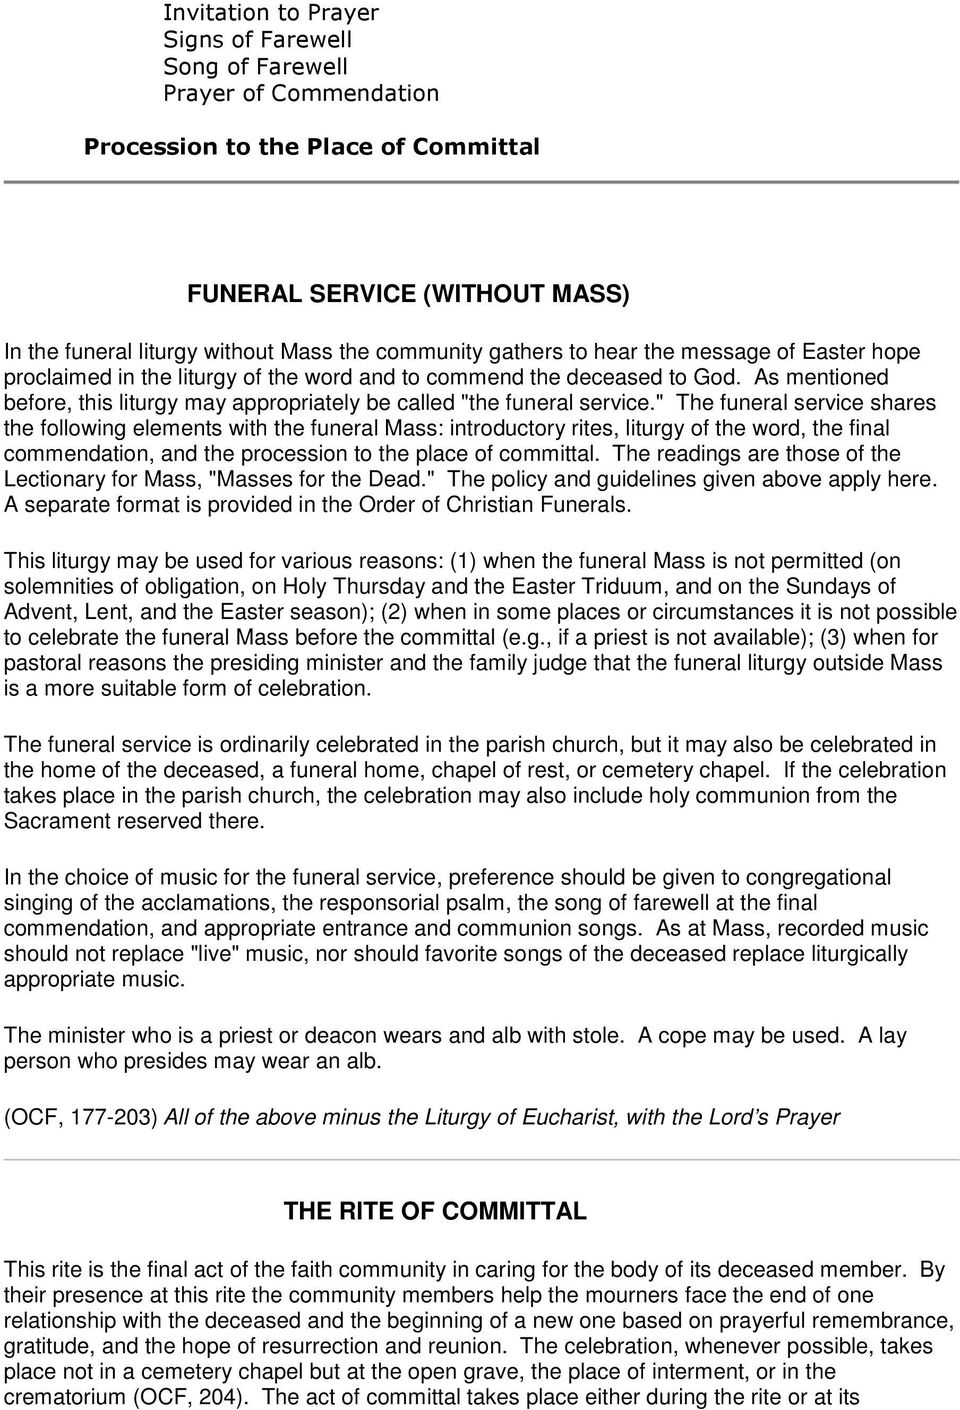 """ The funeral service shares the following elements with the funeral Mass: introductory rites, liturgy of the word, the final commendation, and the procession to the place of committal."